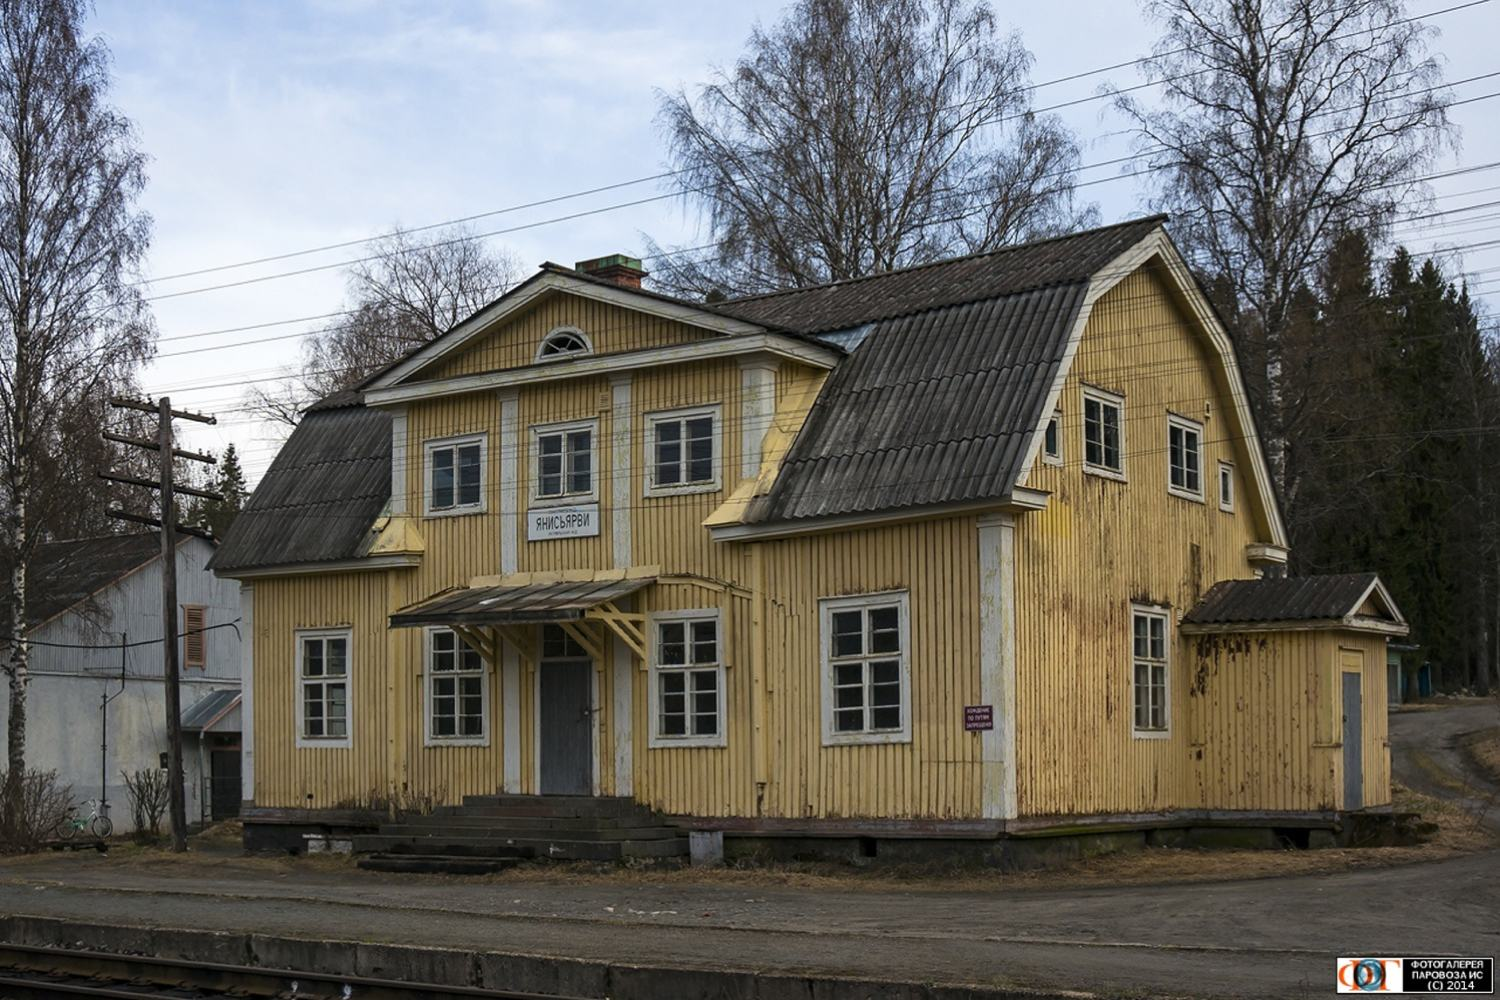 Wooden railway station dating from Finnish times on circuit of Lake Ladoga